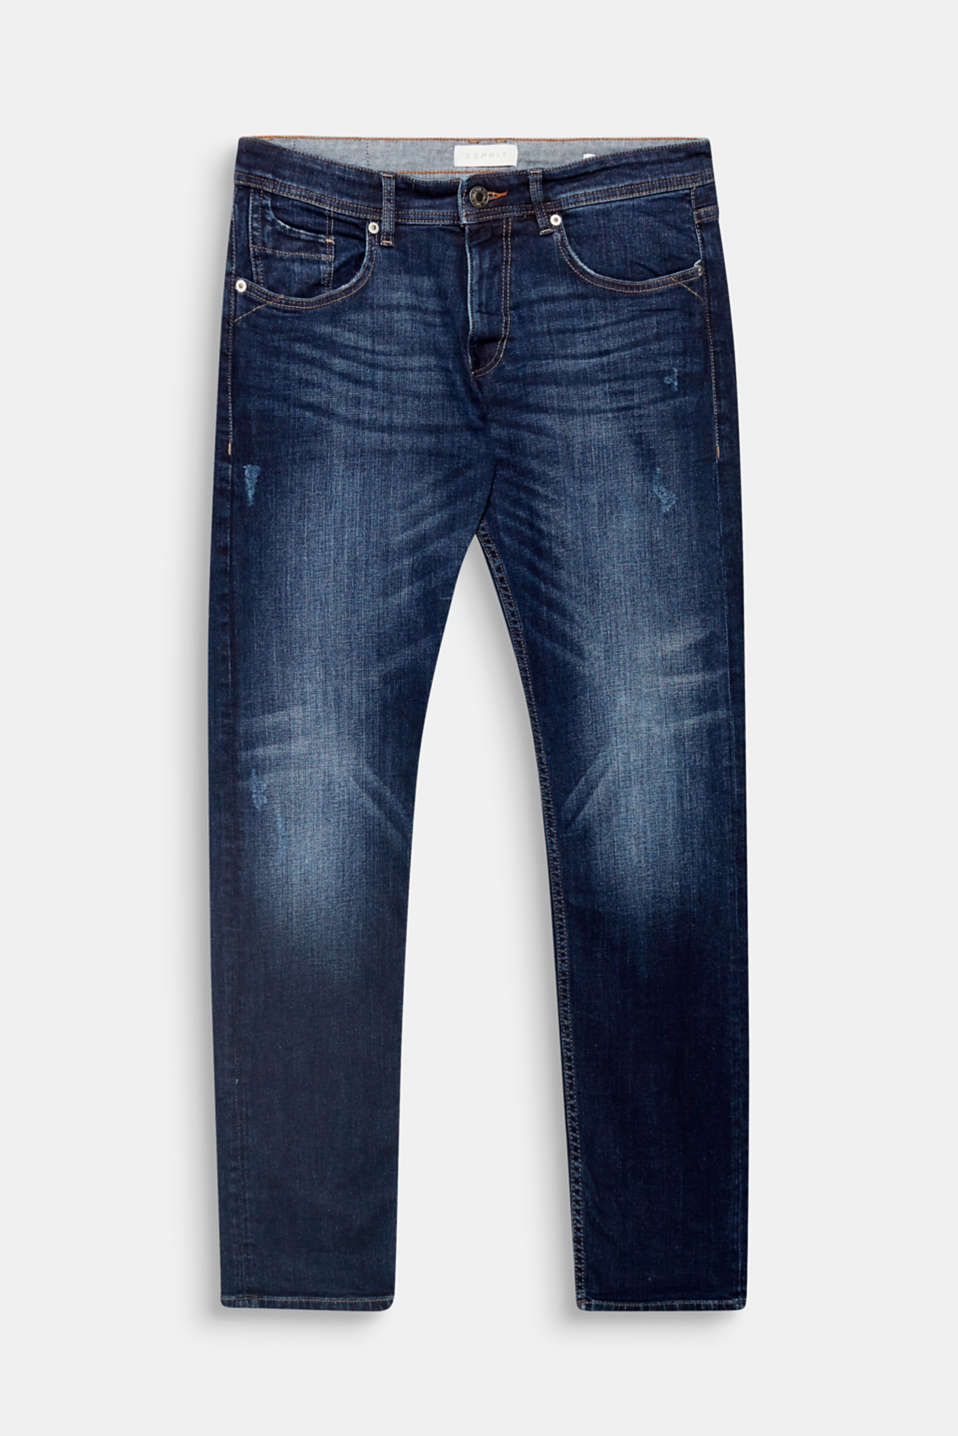 Super stretch comfort a and the authentic vintage finish make these five-pocket jeans a denim favourite.